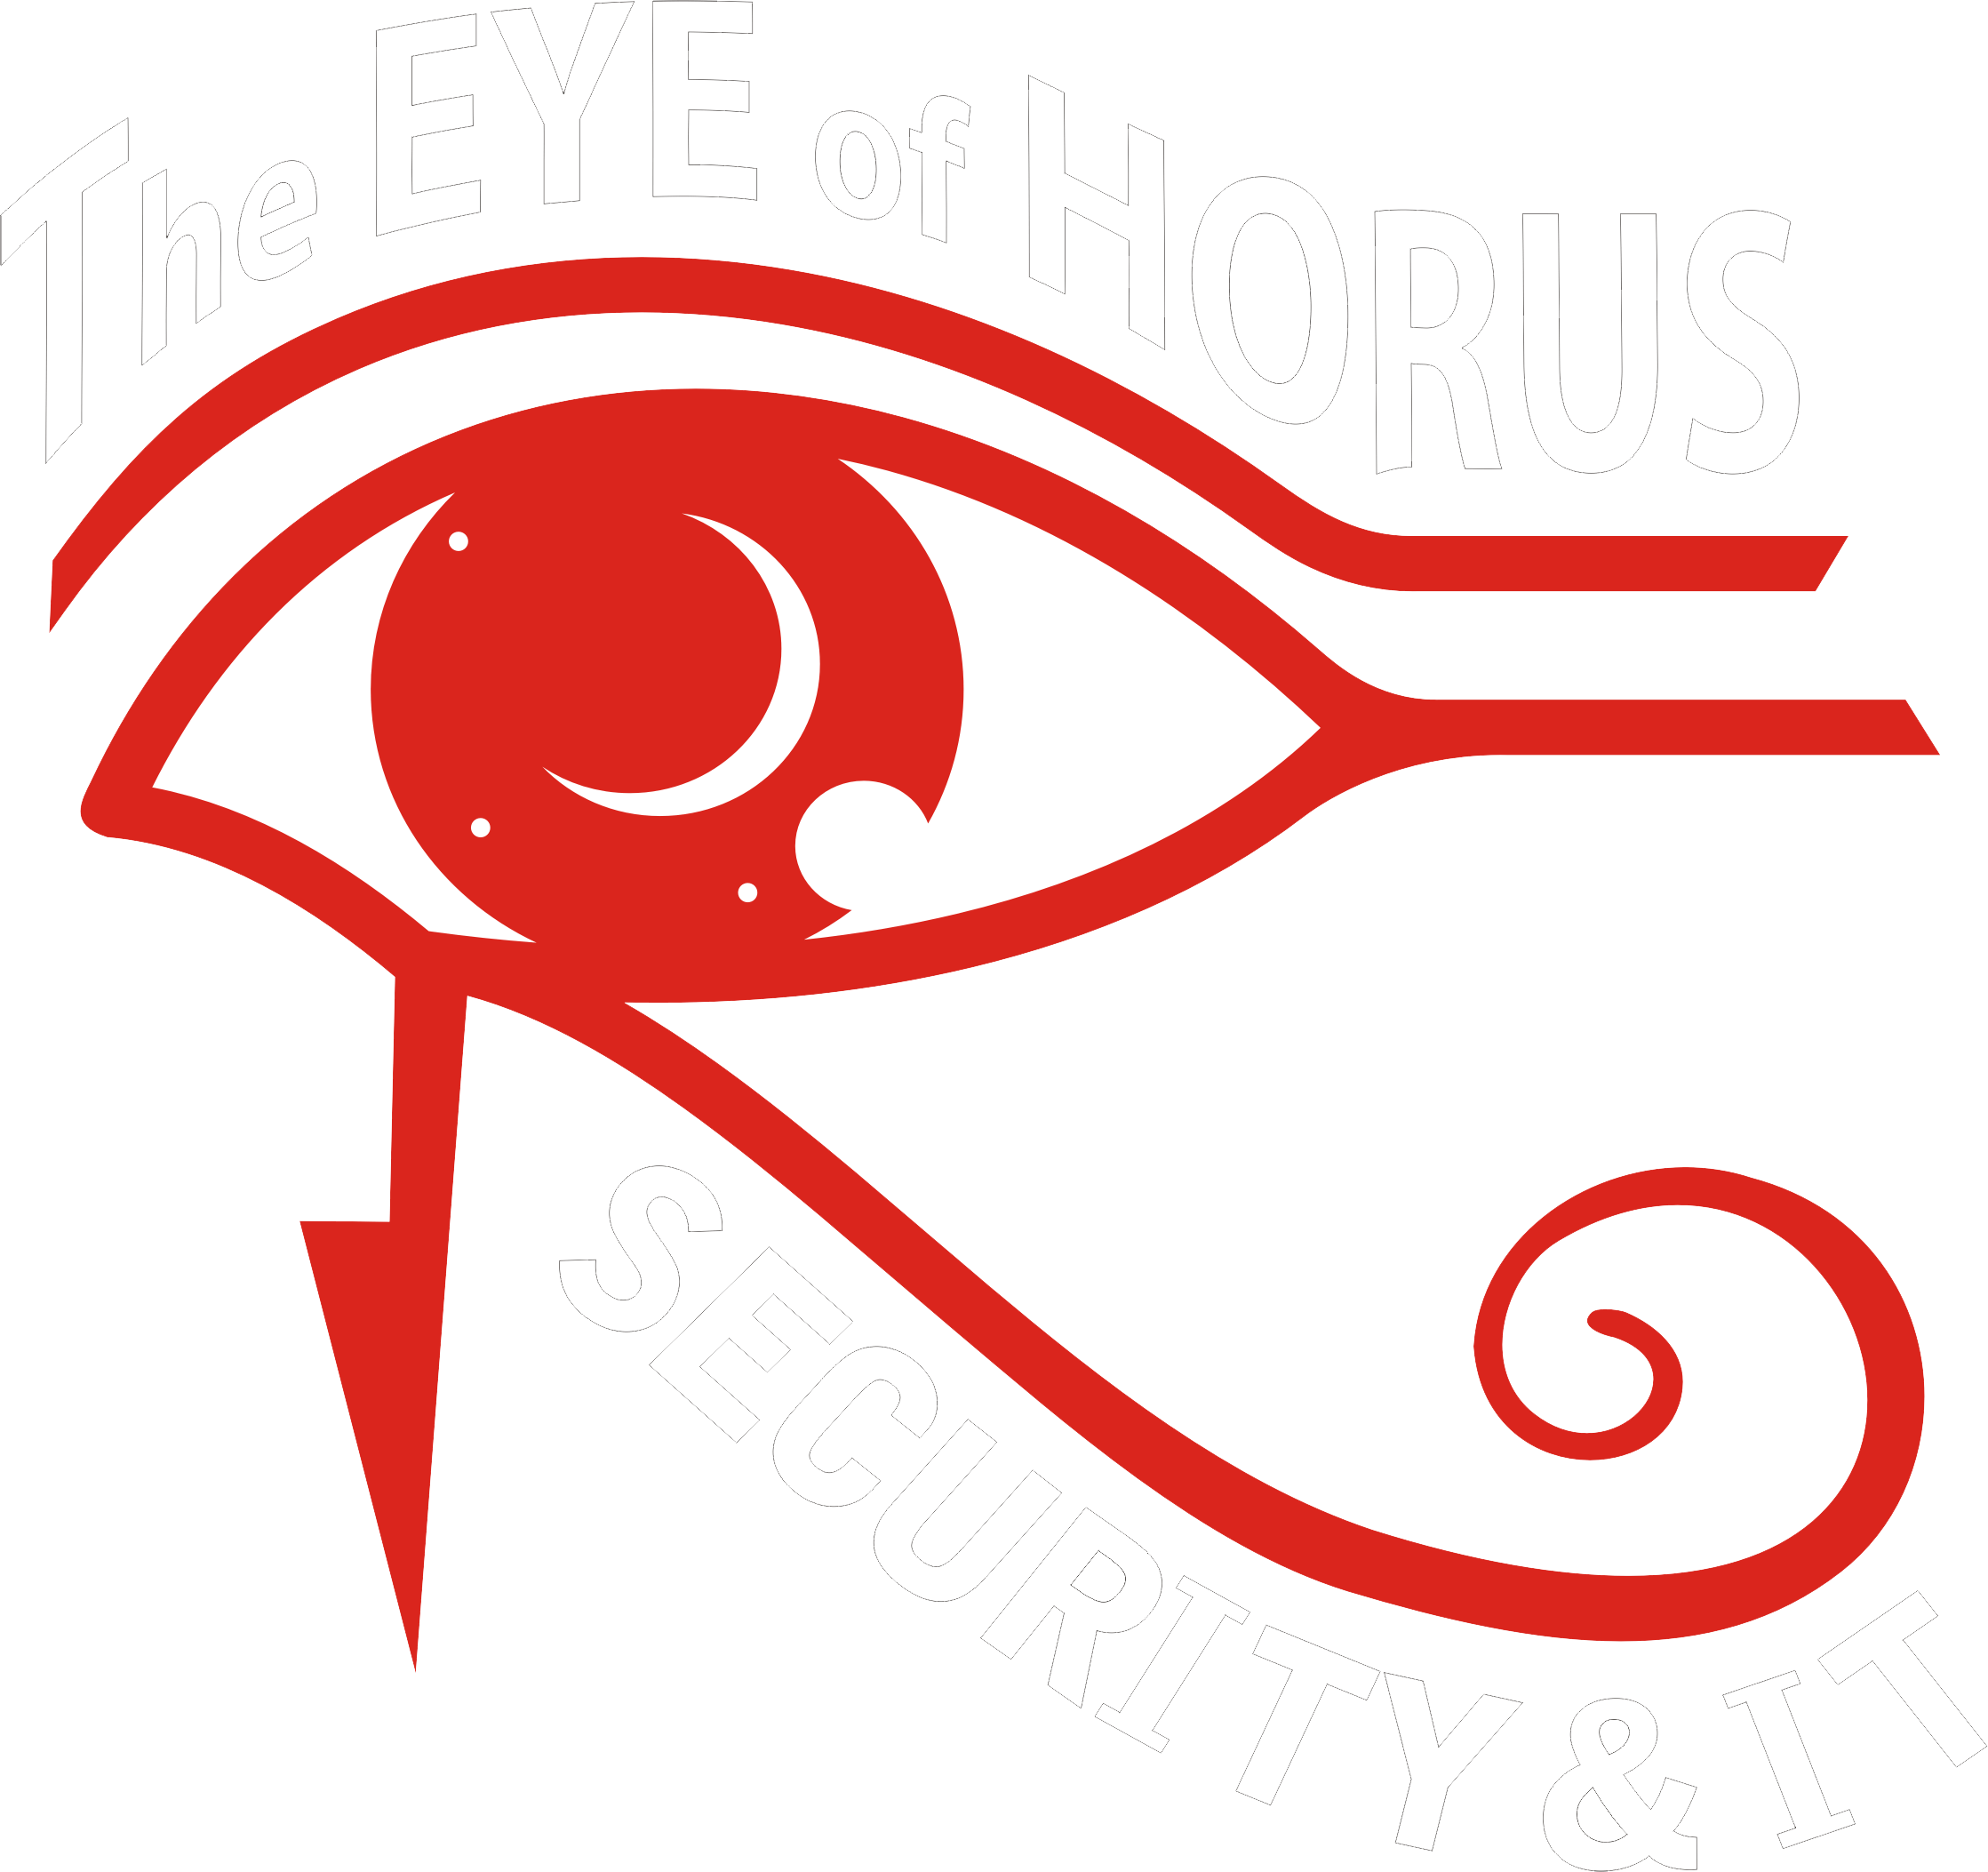 The Eye Of Horus Security